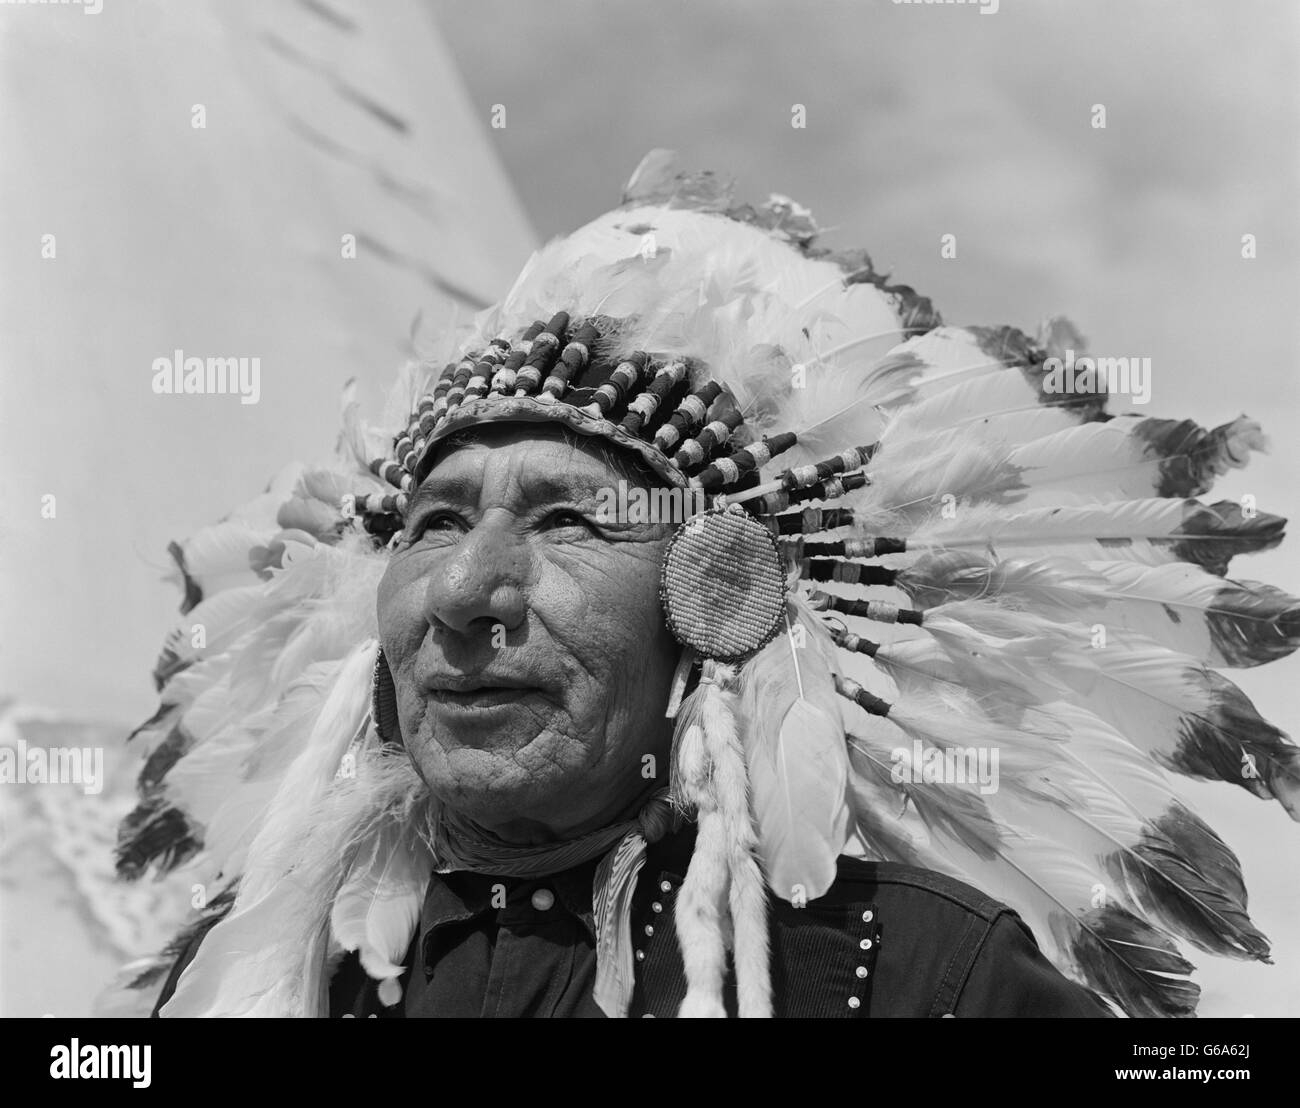 1960s PORTRAIT CHIEF GULL STONEY SIOUX NATIVE AMERICAN MAN WEARING FEATHERED HEADDRESS MORLEY RESERVATION ALBERTA - Stock Image